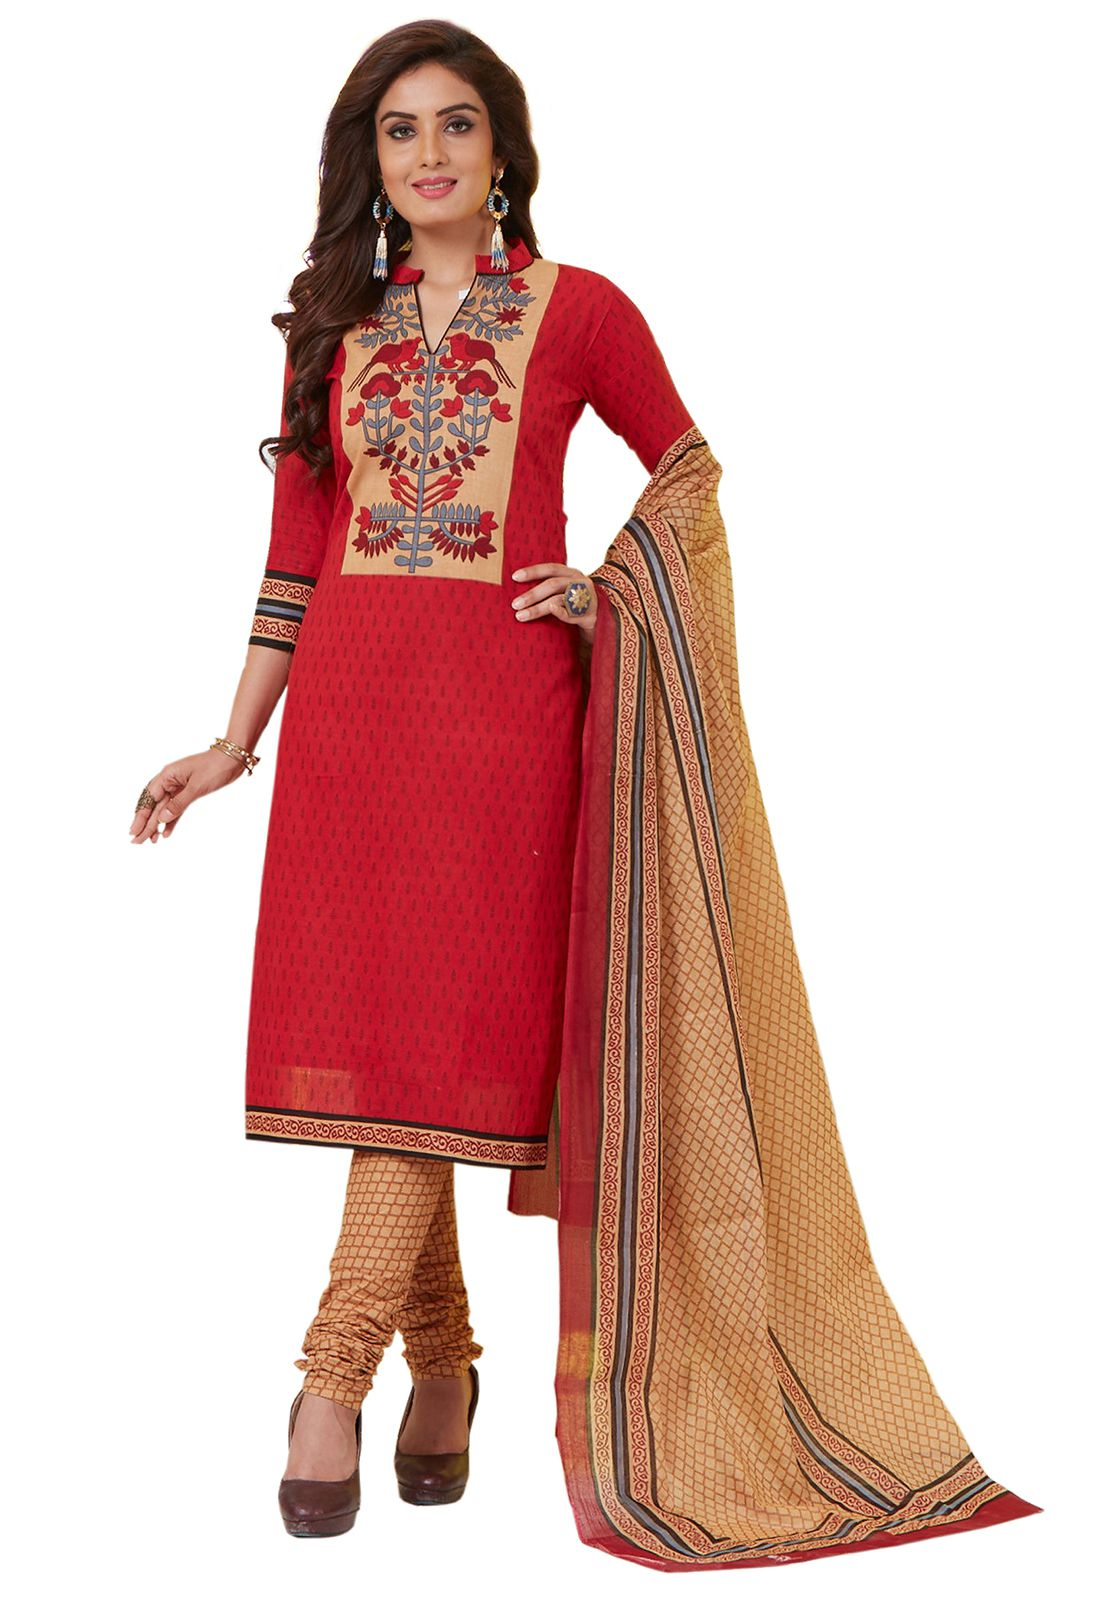 df8590995ab Ishin Red Cotton Dress Material - Buy Ishin Red Cotton Dress Material  Online at Best Prices in India on Snapdeal